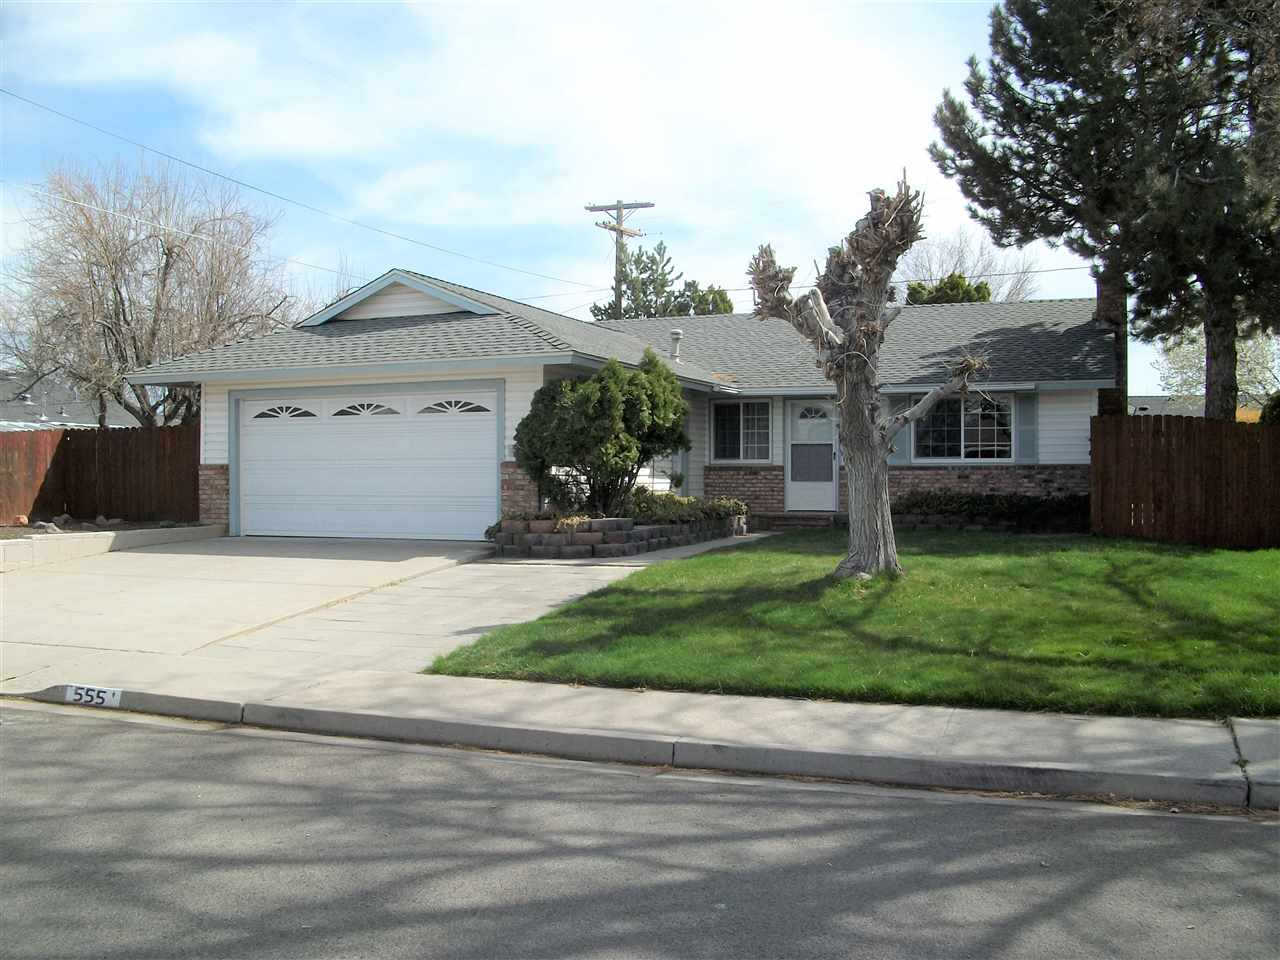 555 O'Brien Way, Sparks, NV 89431 has an Open House on  Saturday, May 11, 2019 12:00 PM to 2:00 PM